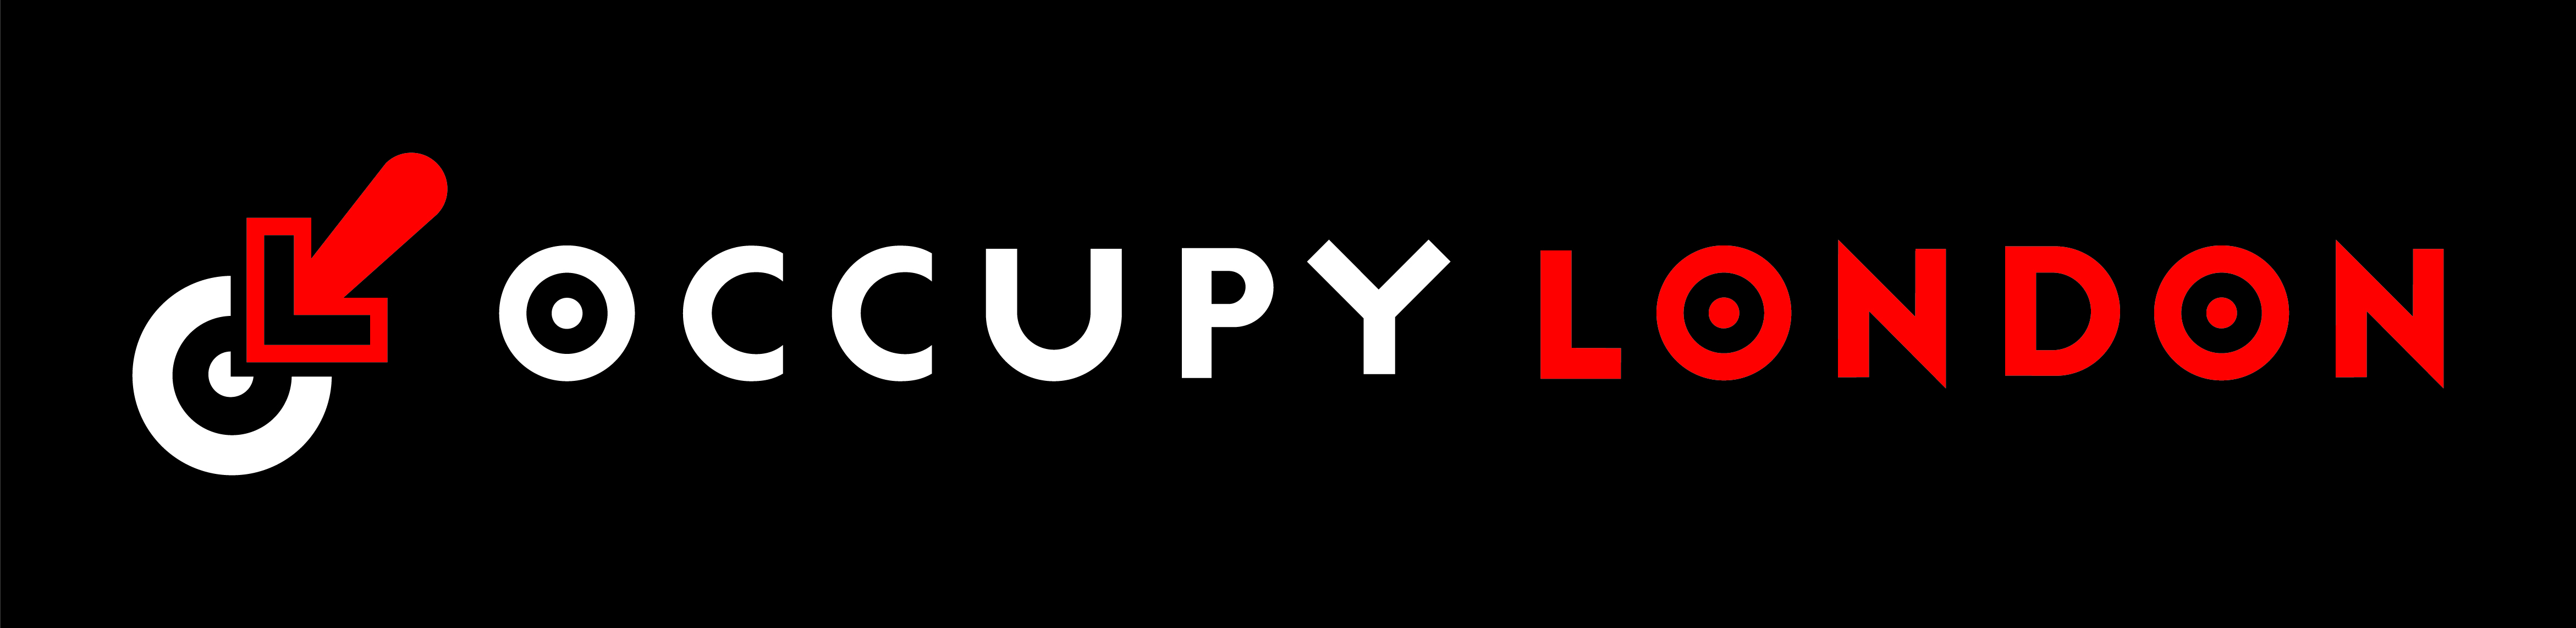 Occupy London logo 2011